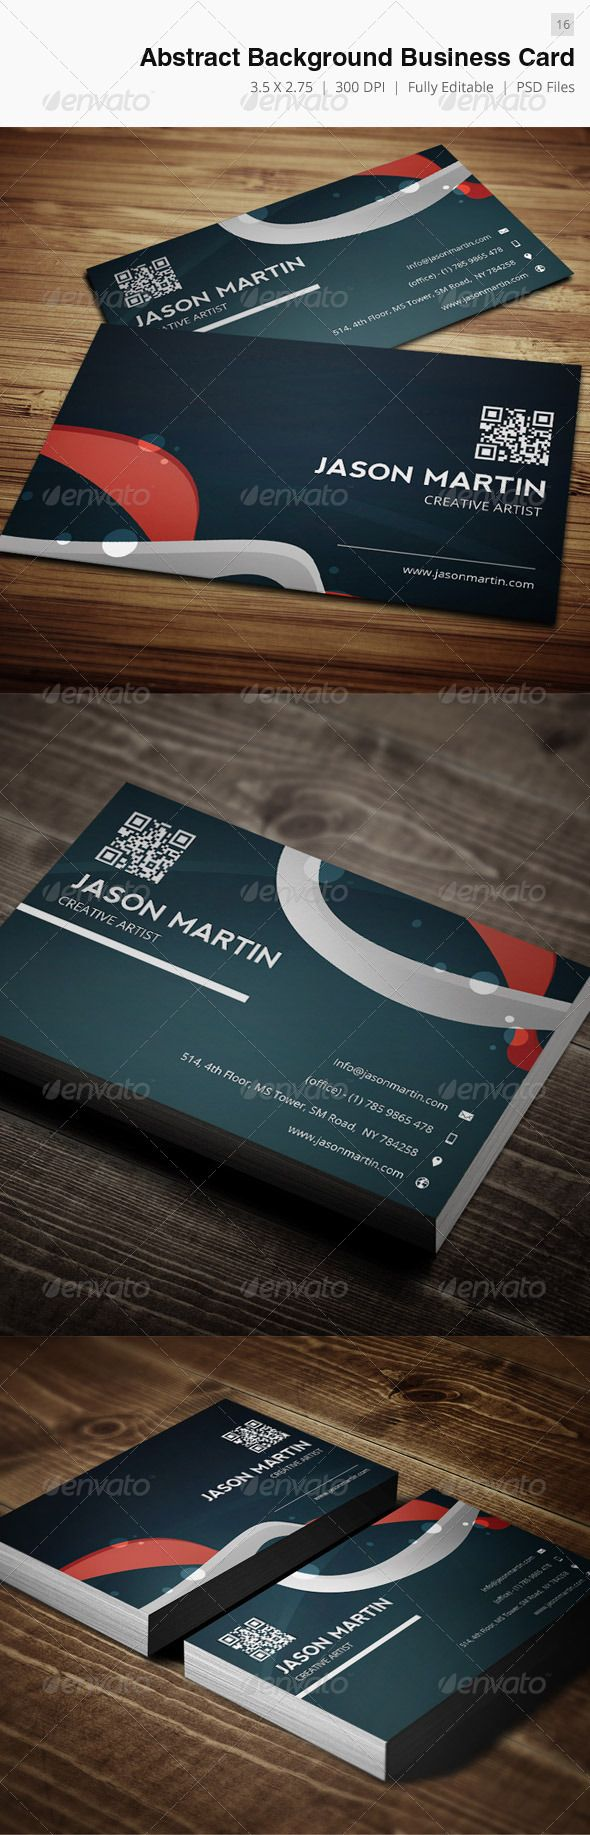 abstract background creative business card  16